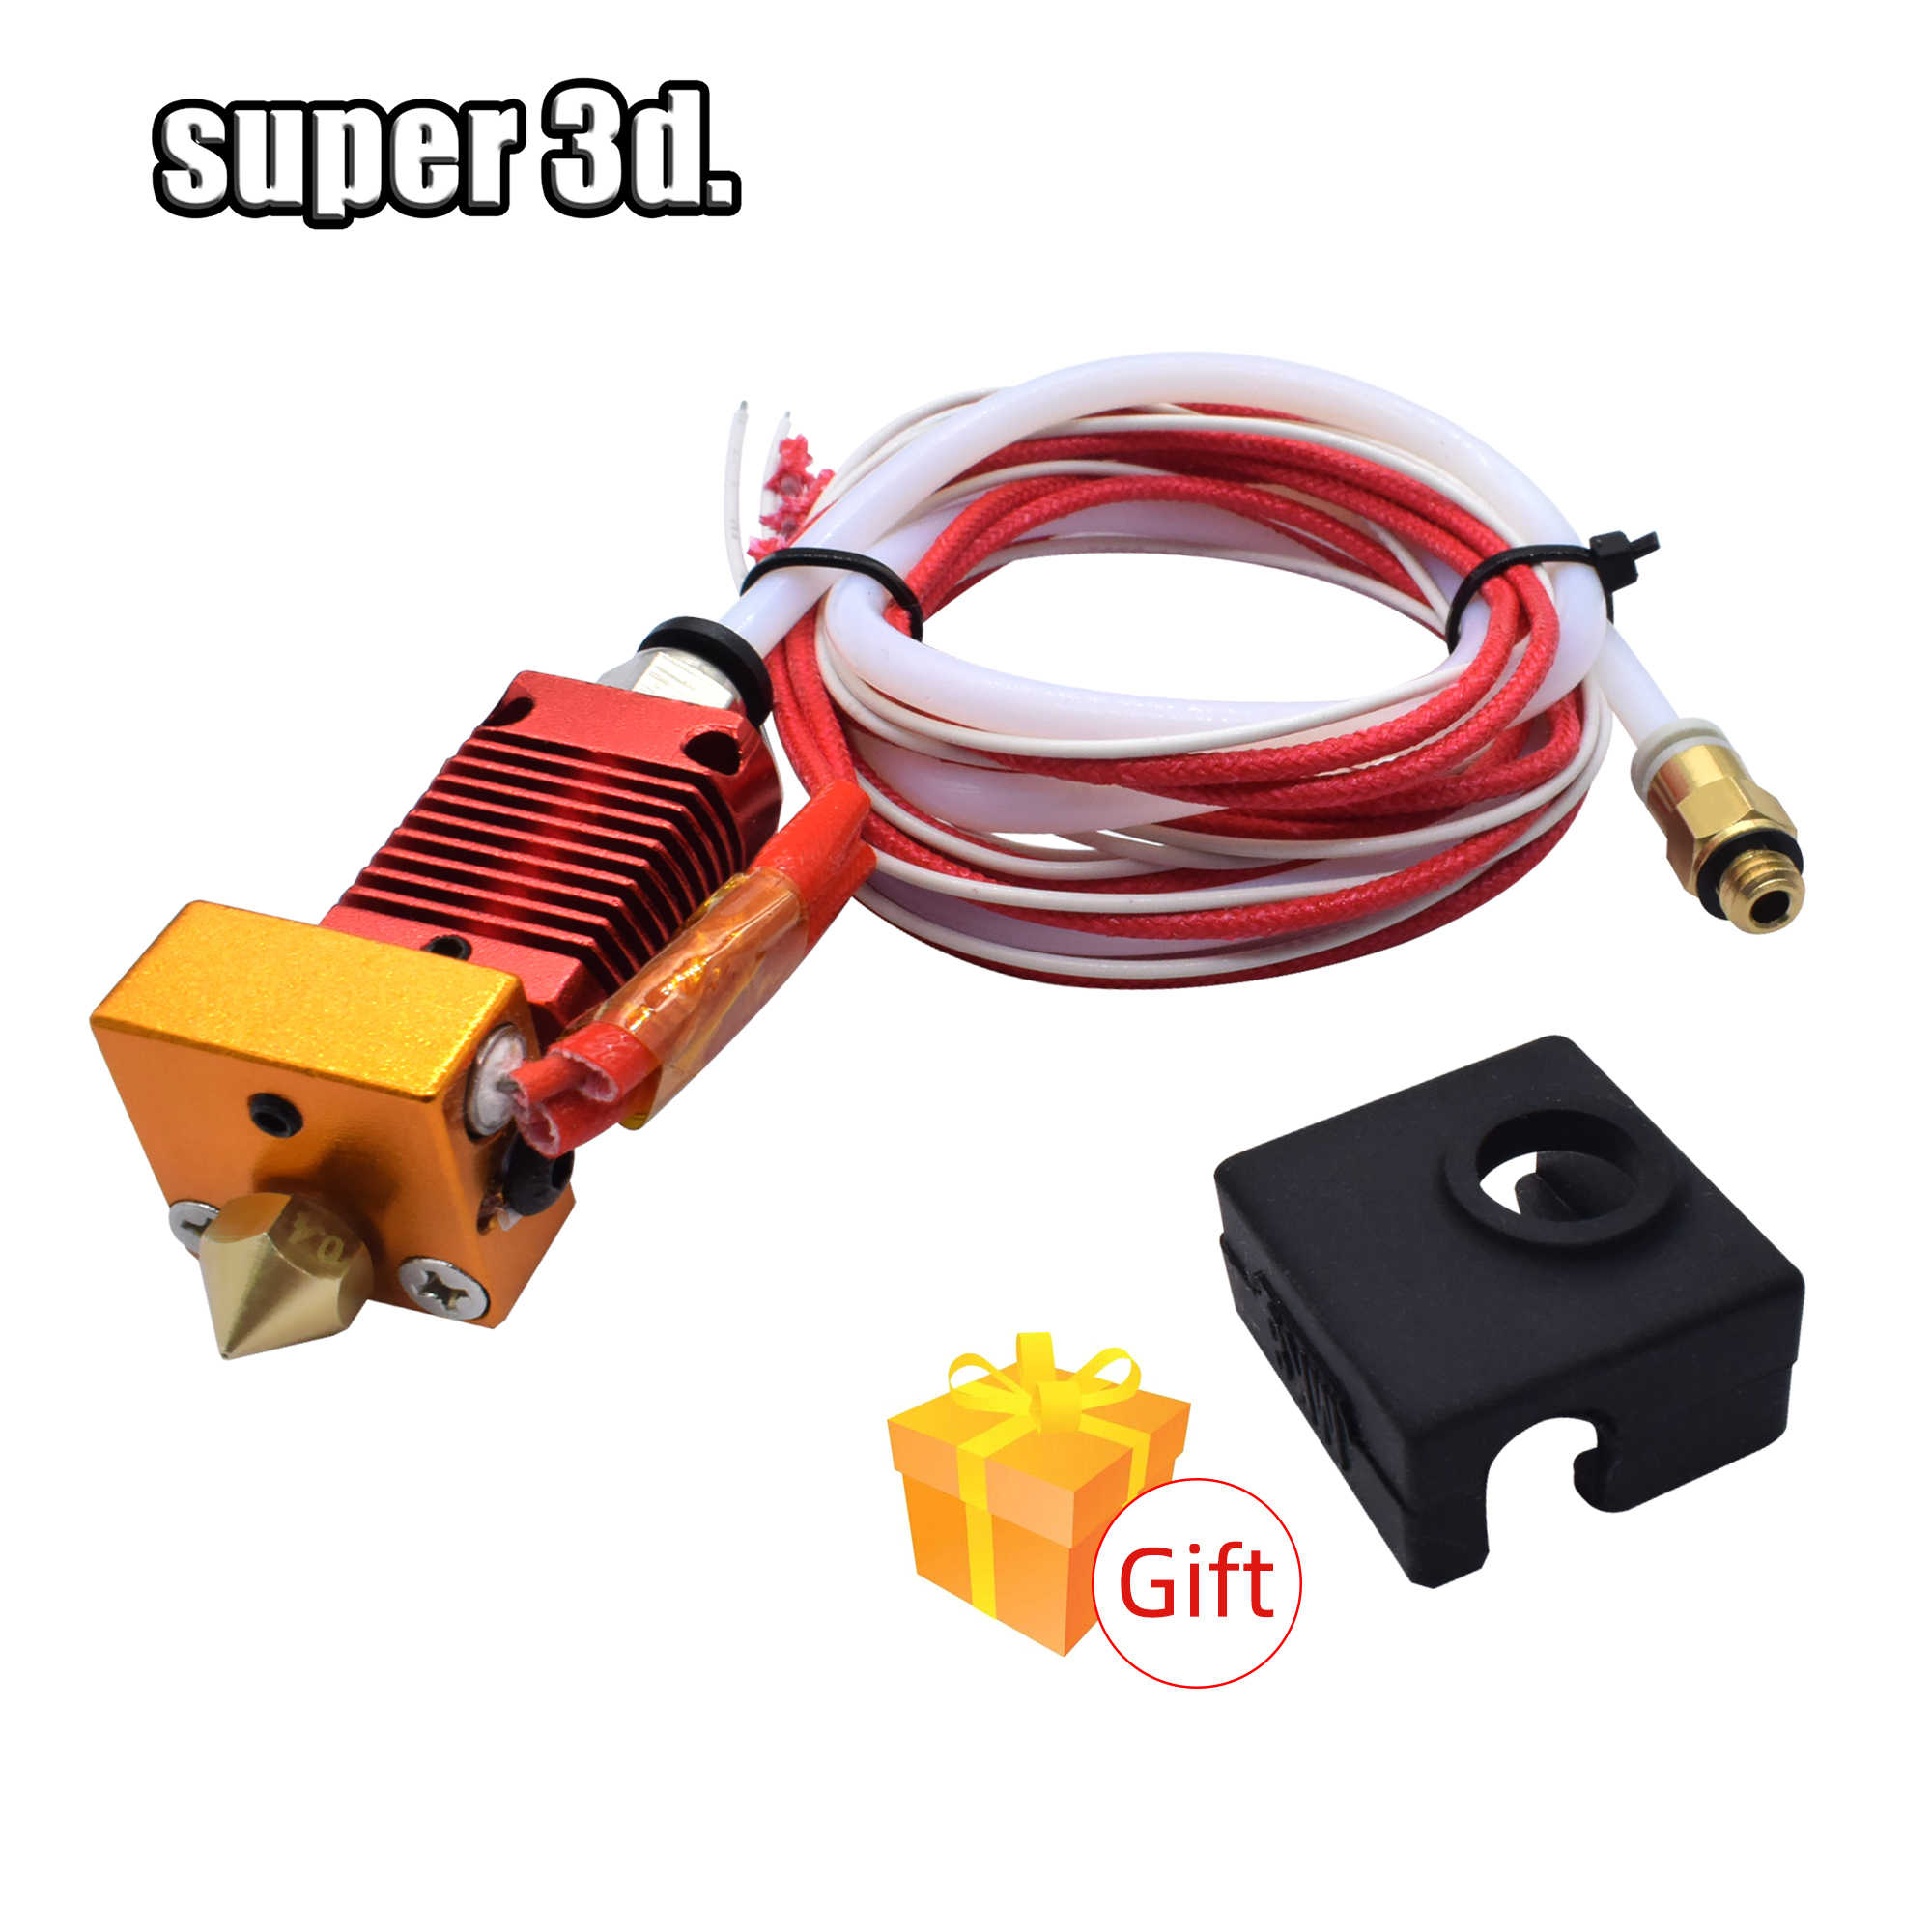 3D Volledig Metalen J-head CR10 Hotend Extruder Kit Hot End Kit voor Ender-3 CR10 10s Bowden Extruder 12/24V 40W 3D Printer Onderdelen